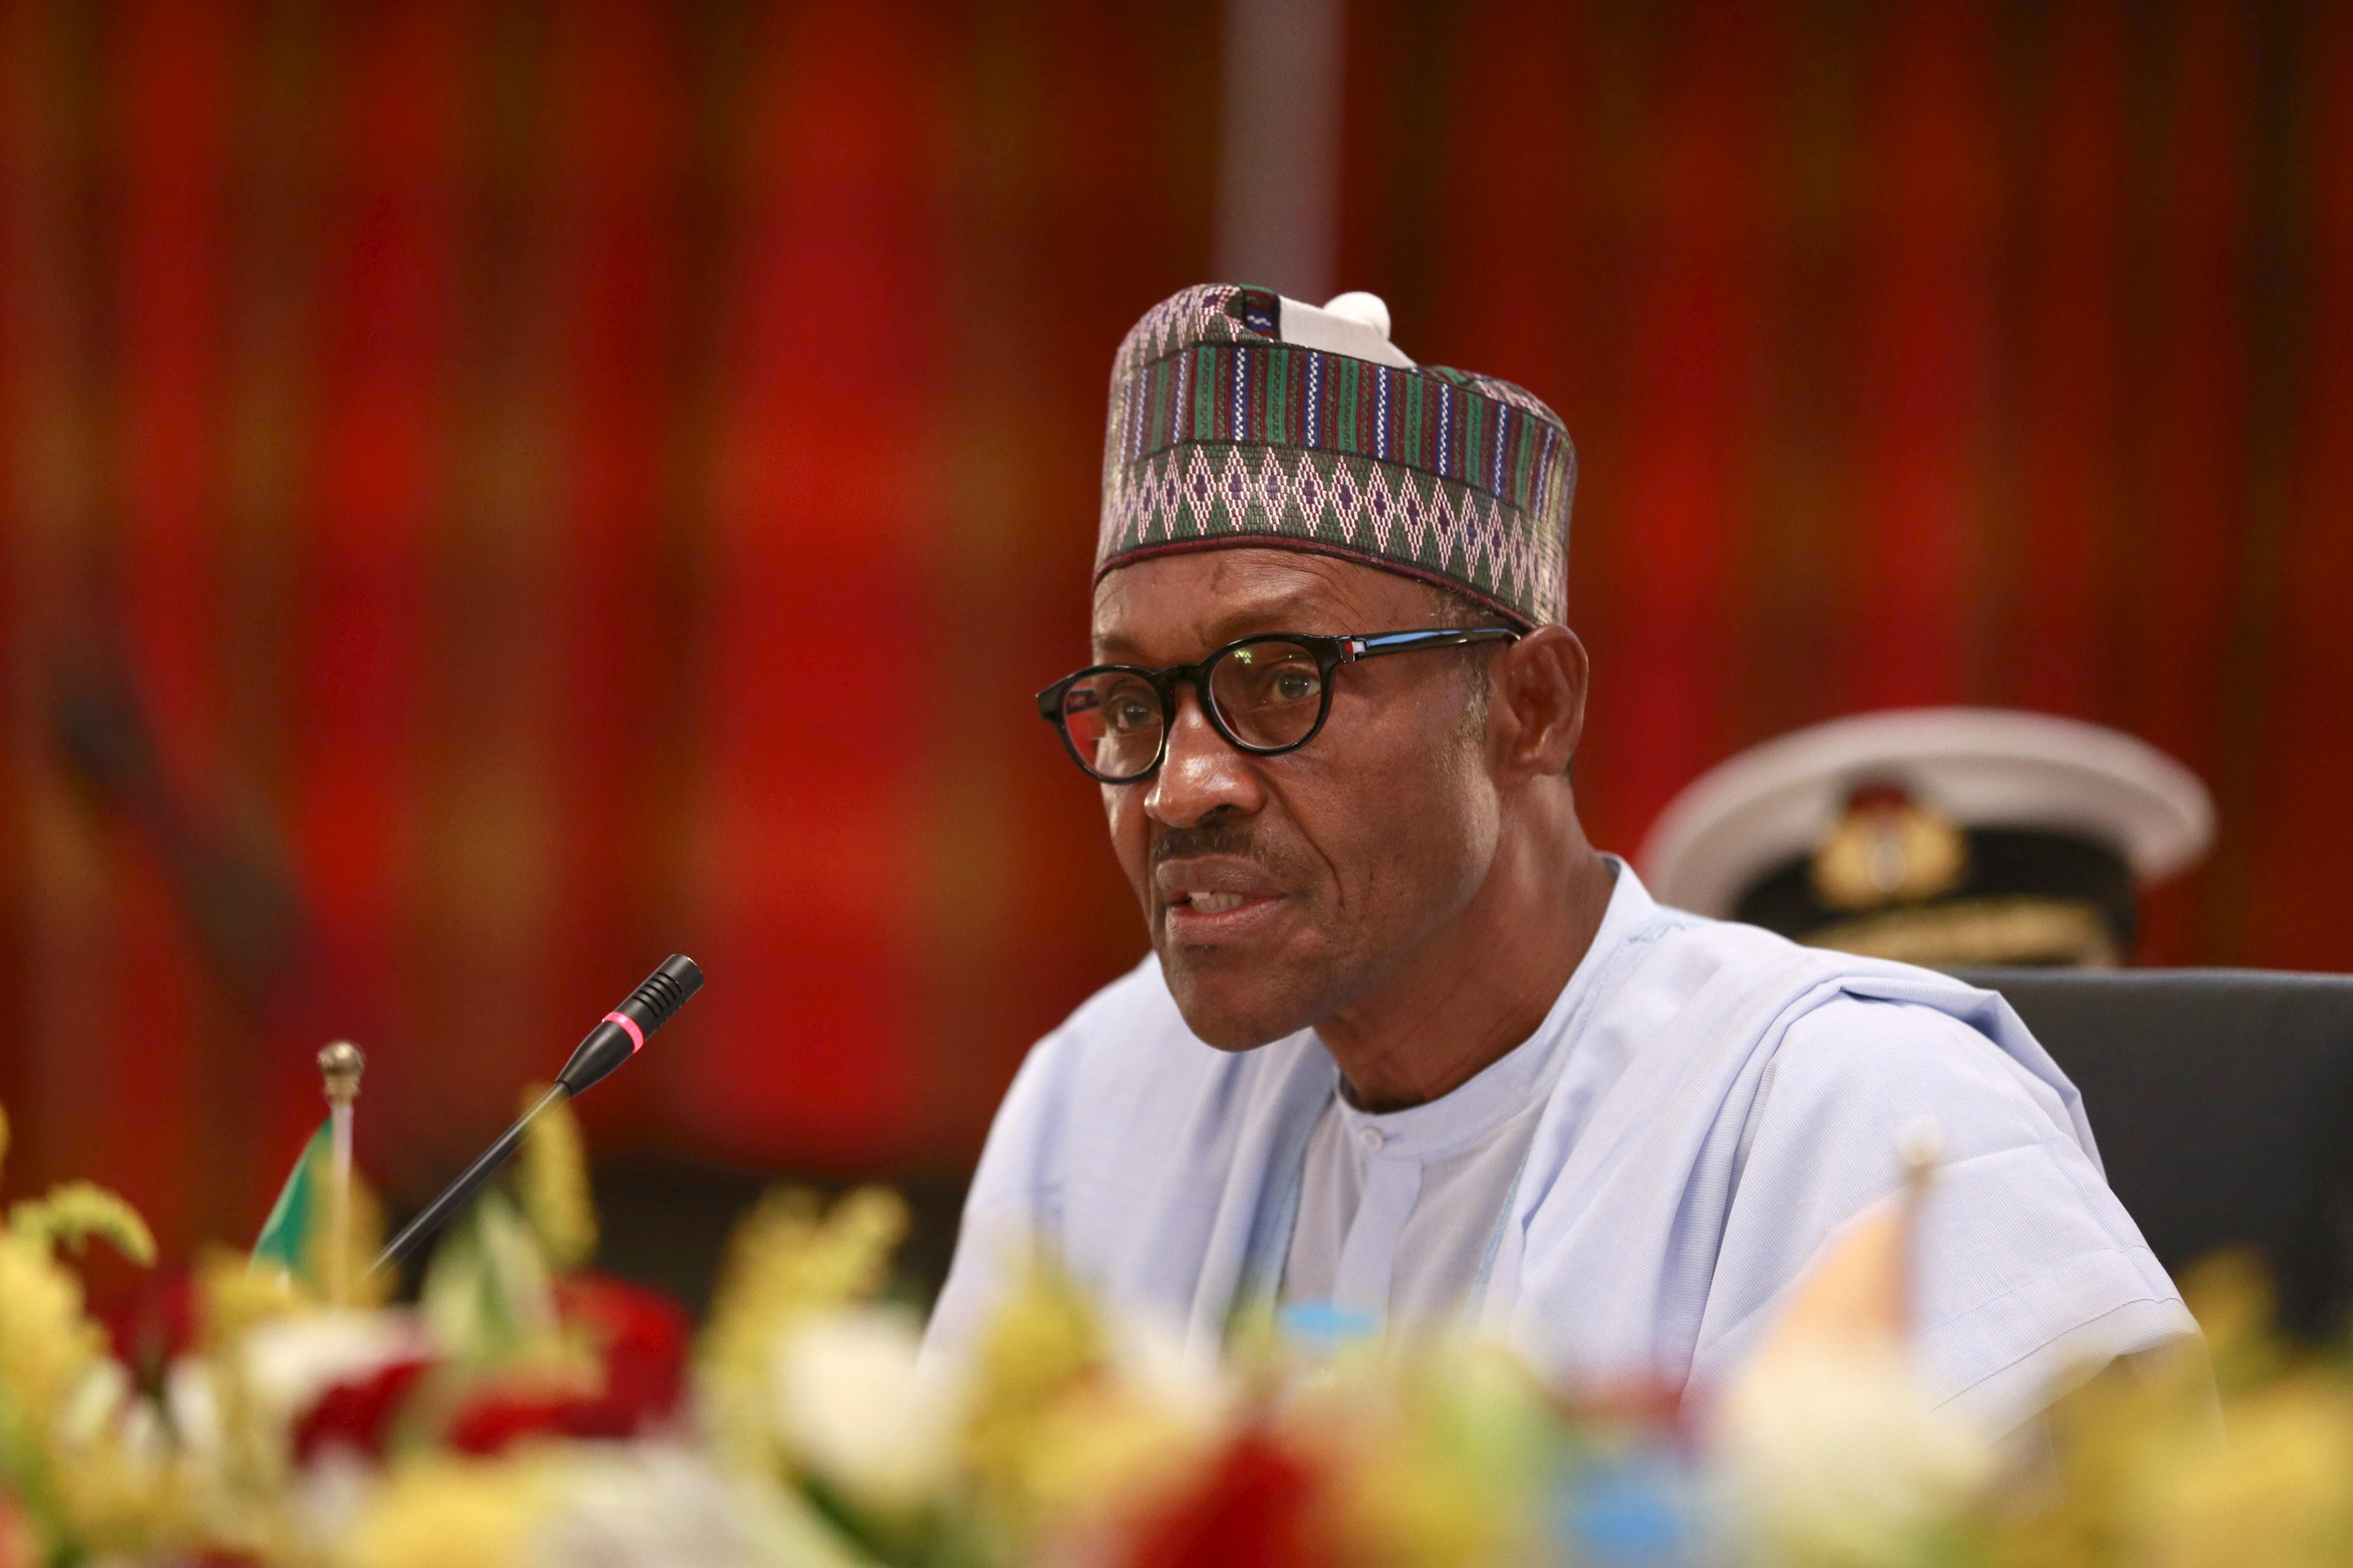 buhari speaks - Ondo seeks rightful position in NDDC, urges Buhari to reverse appointment